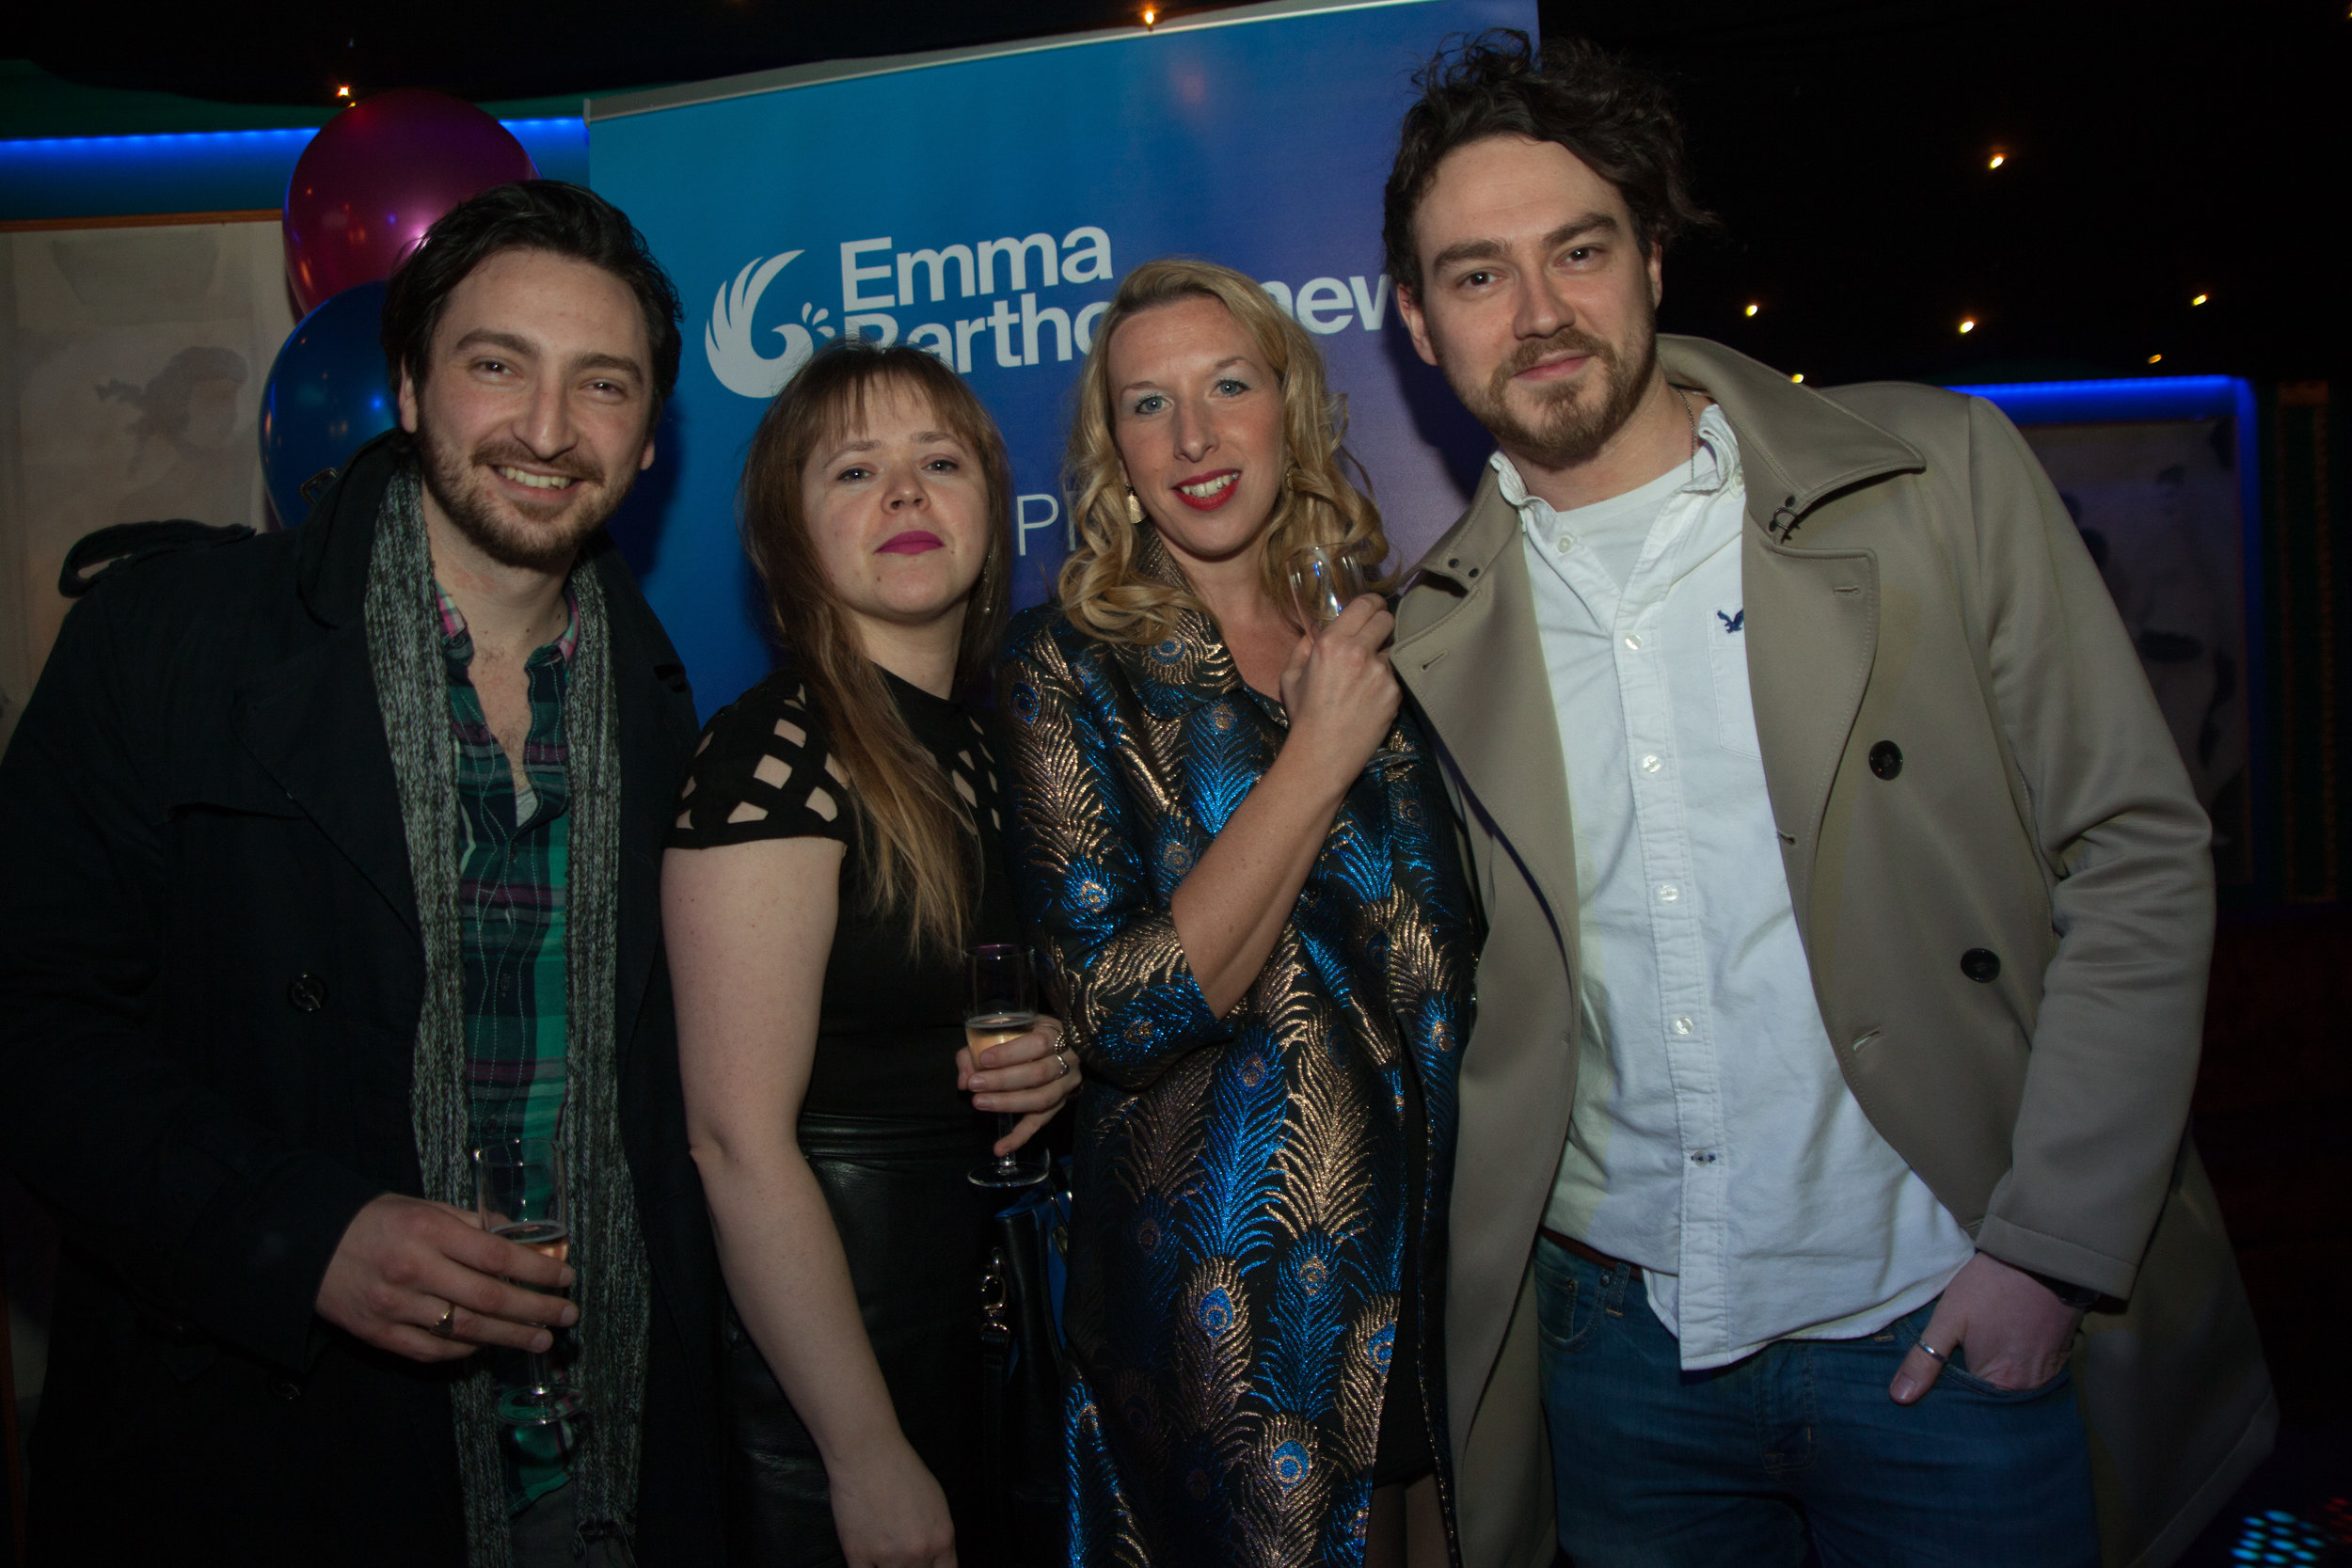 Founders of the Unsigned Music Awards with music blogger, Dovile Mal & host Emma Bartholomew at the EBPR Party